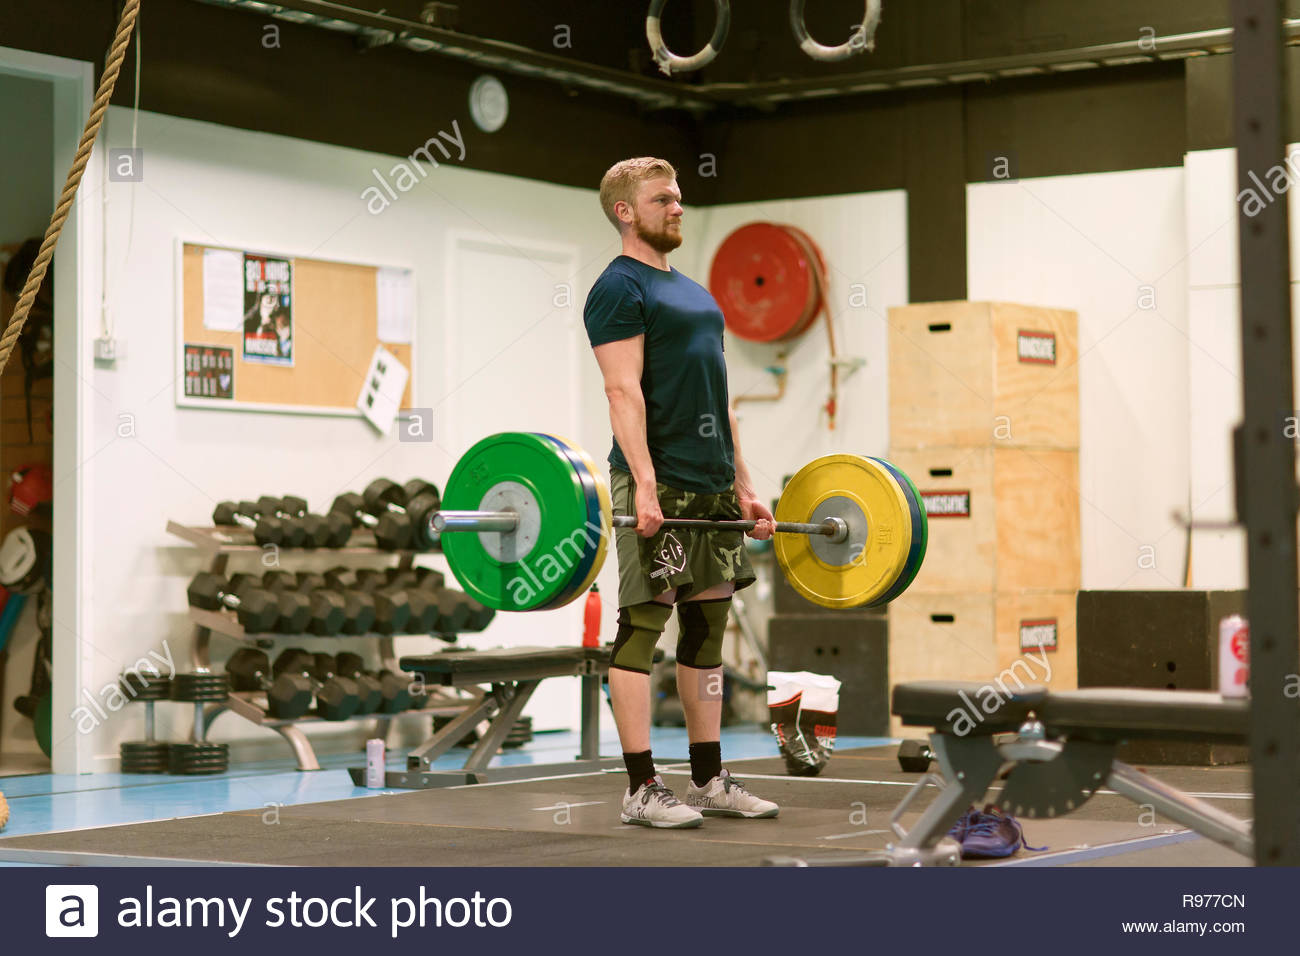 Young man lifting a barbell in a gym - Stock Image